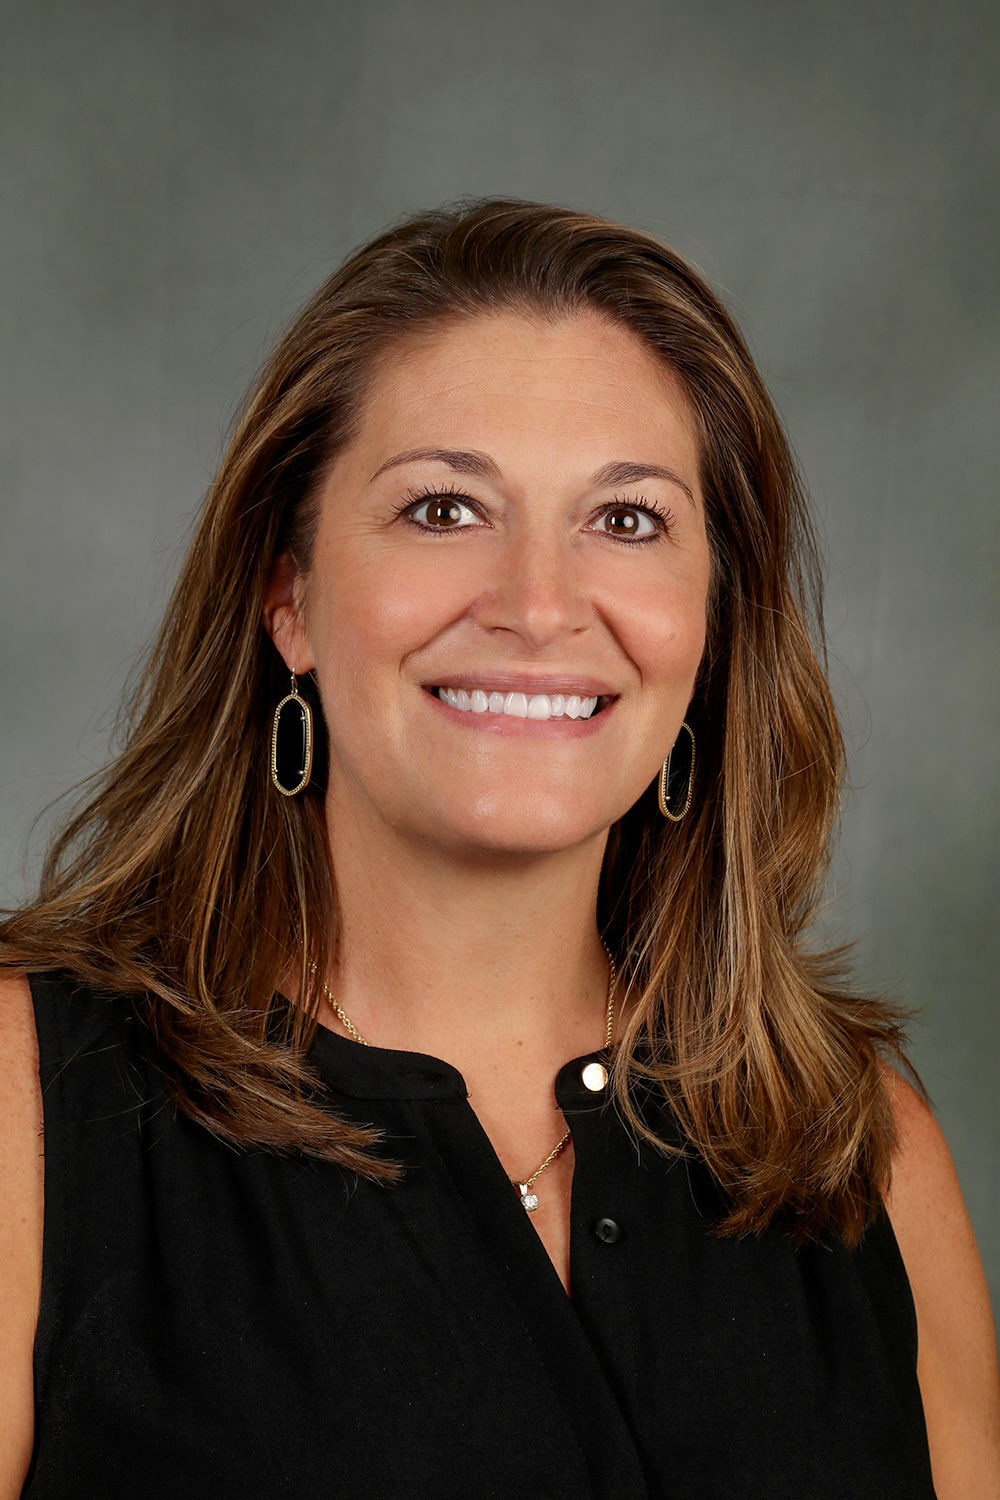 Jody Hormann was named the new LISD athletic director on Friday. She previously worked in the district as a coach and assistant athletic director from 2008-2015.